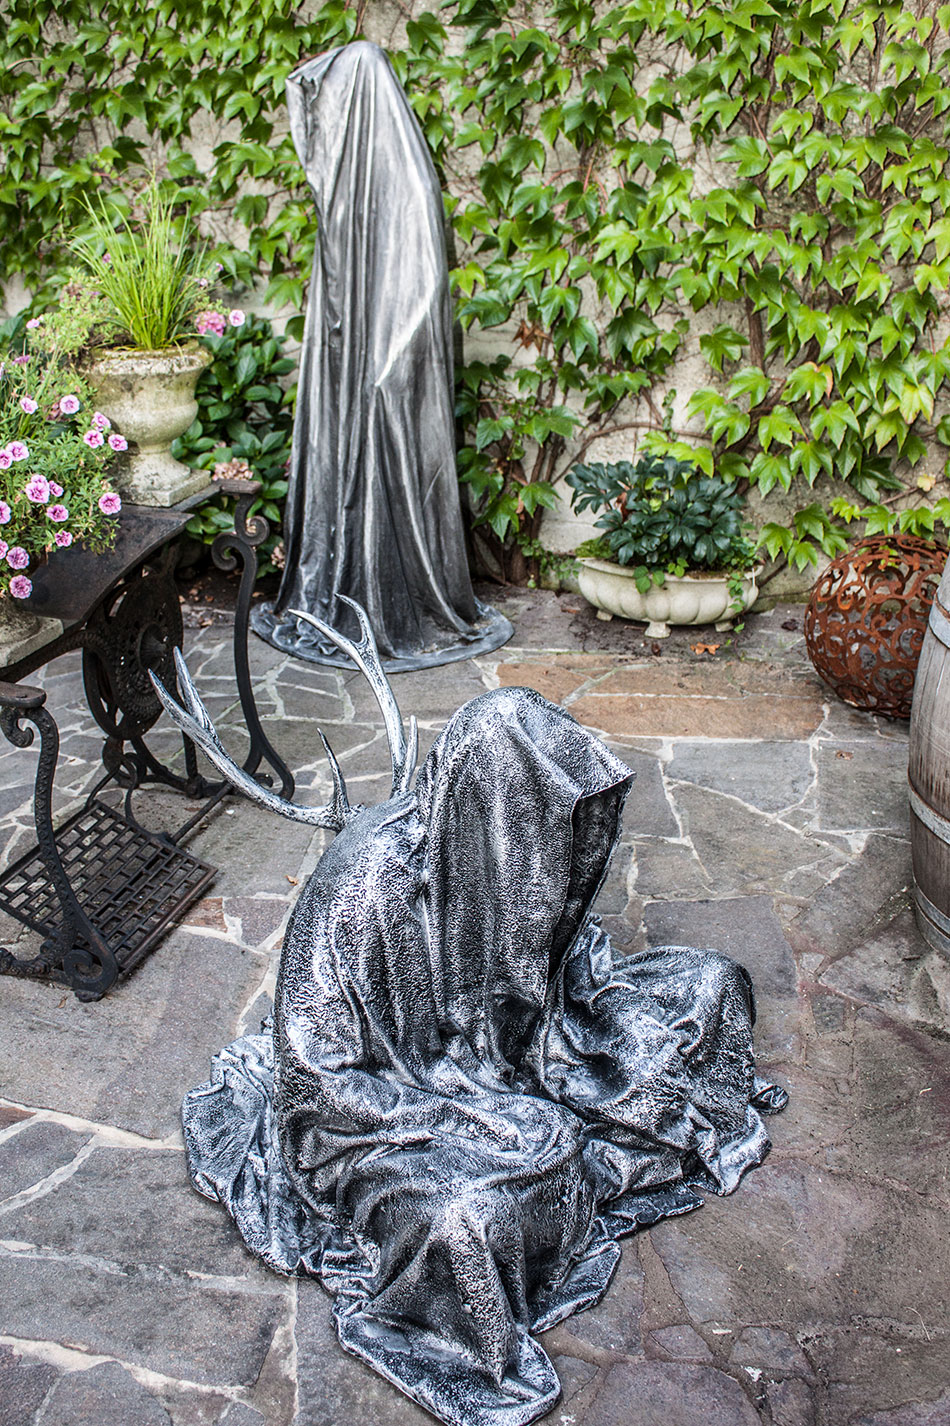 guardians-of-time-sculptor-manfred-kielnhofer-contemporary-modern-fine-arts-antique-sculpture-sttue-art-design-2578